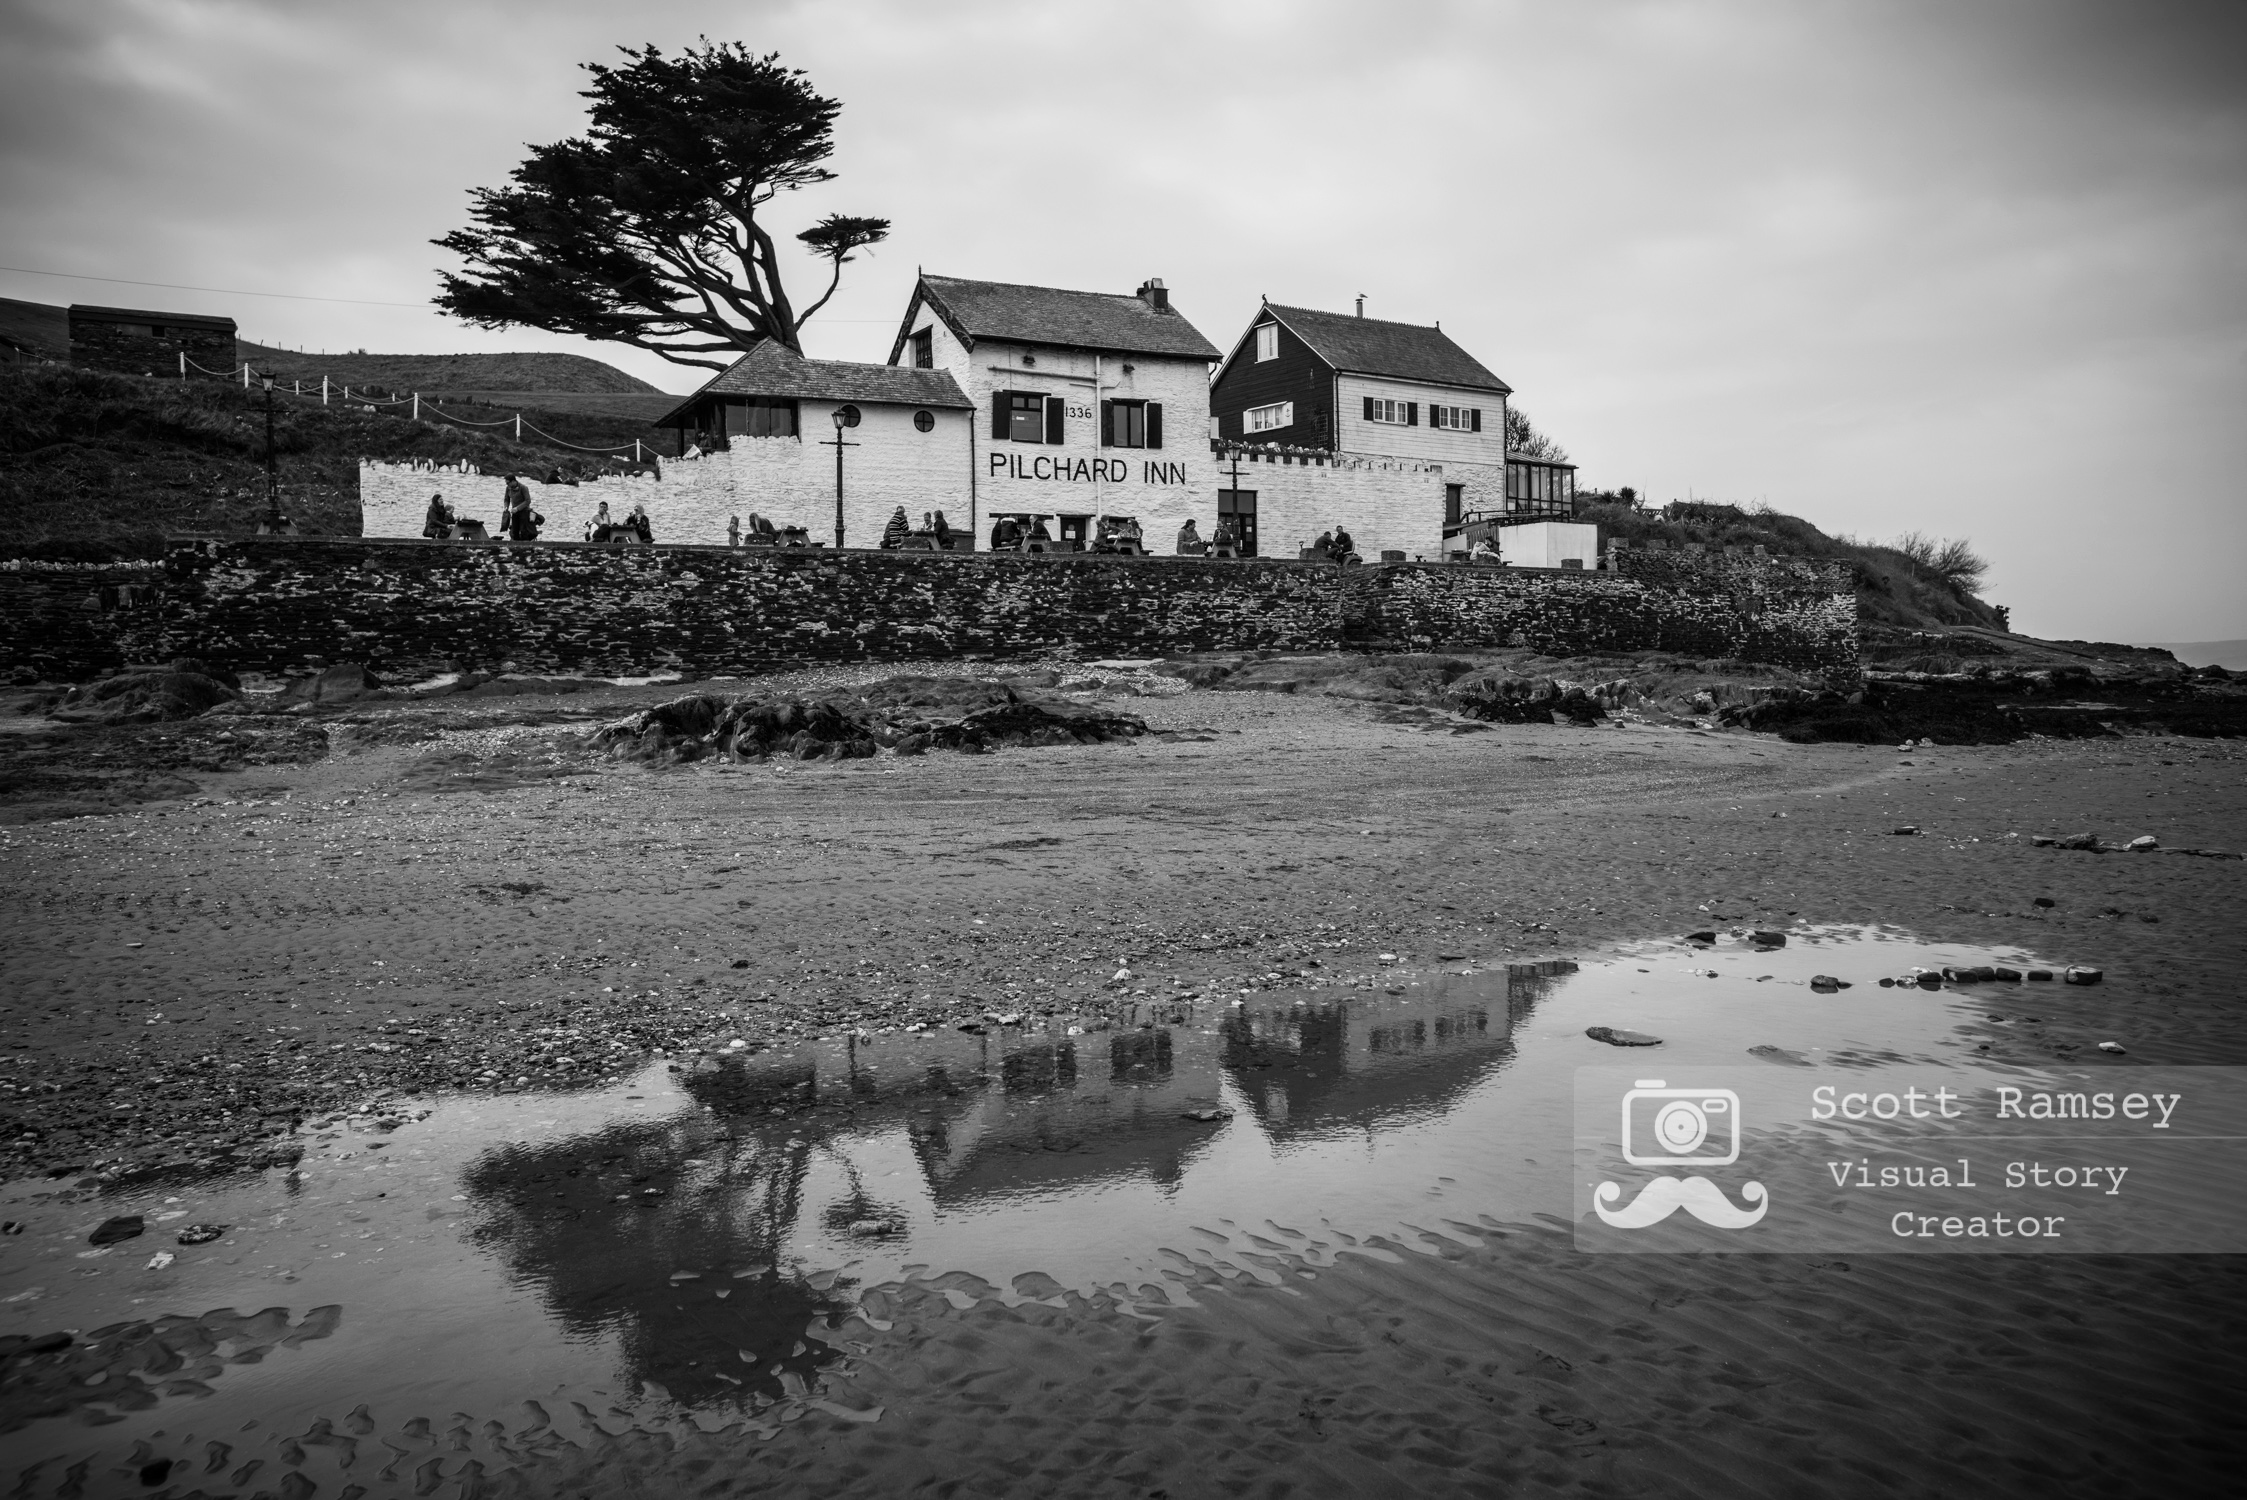 The Pilchard Inn on Burgh Island, Devon, England. Photo © Scott Ramsey. These days the Pilchard Inn serves holiday makers with a pint and crab sandwich however during the early part of it's 700 year history pilchard fisherman, smugglers and even wreckers would have visited. During the 17th and 18th Century smuggling was part of everyday life with  smugglers and wreckers  working together to lure unsuspecting ships onto the Western rocks.